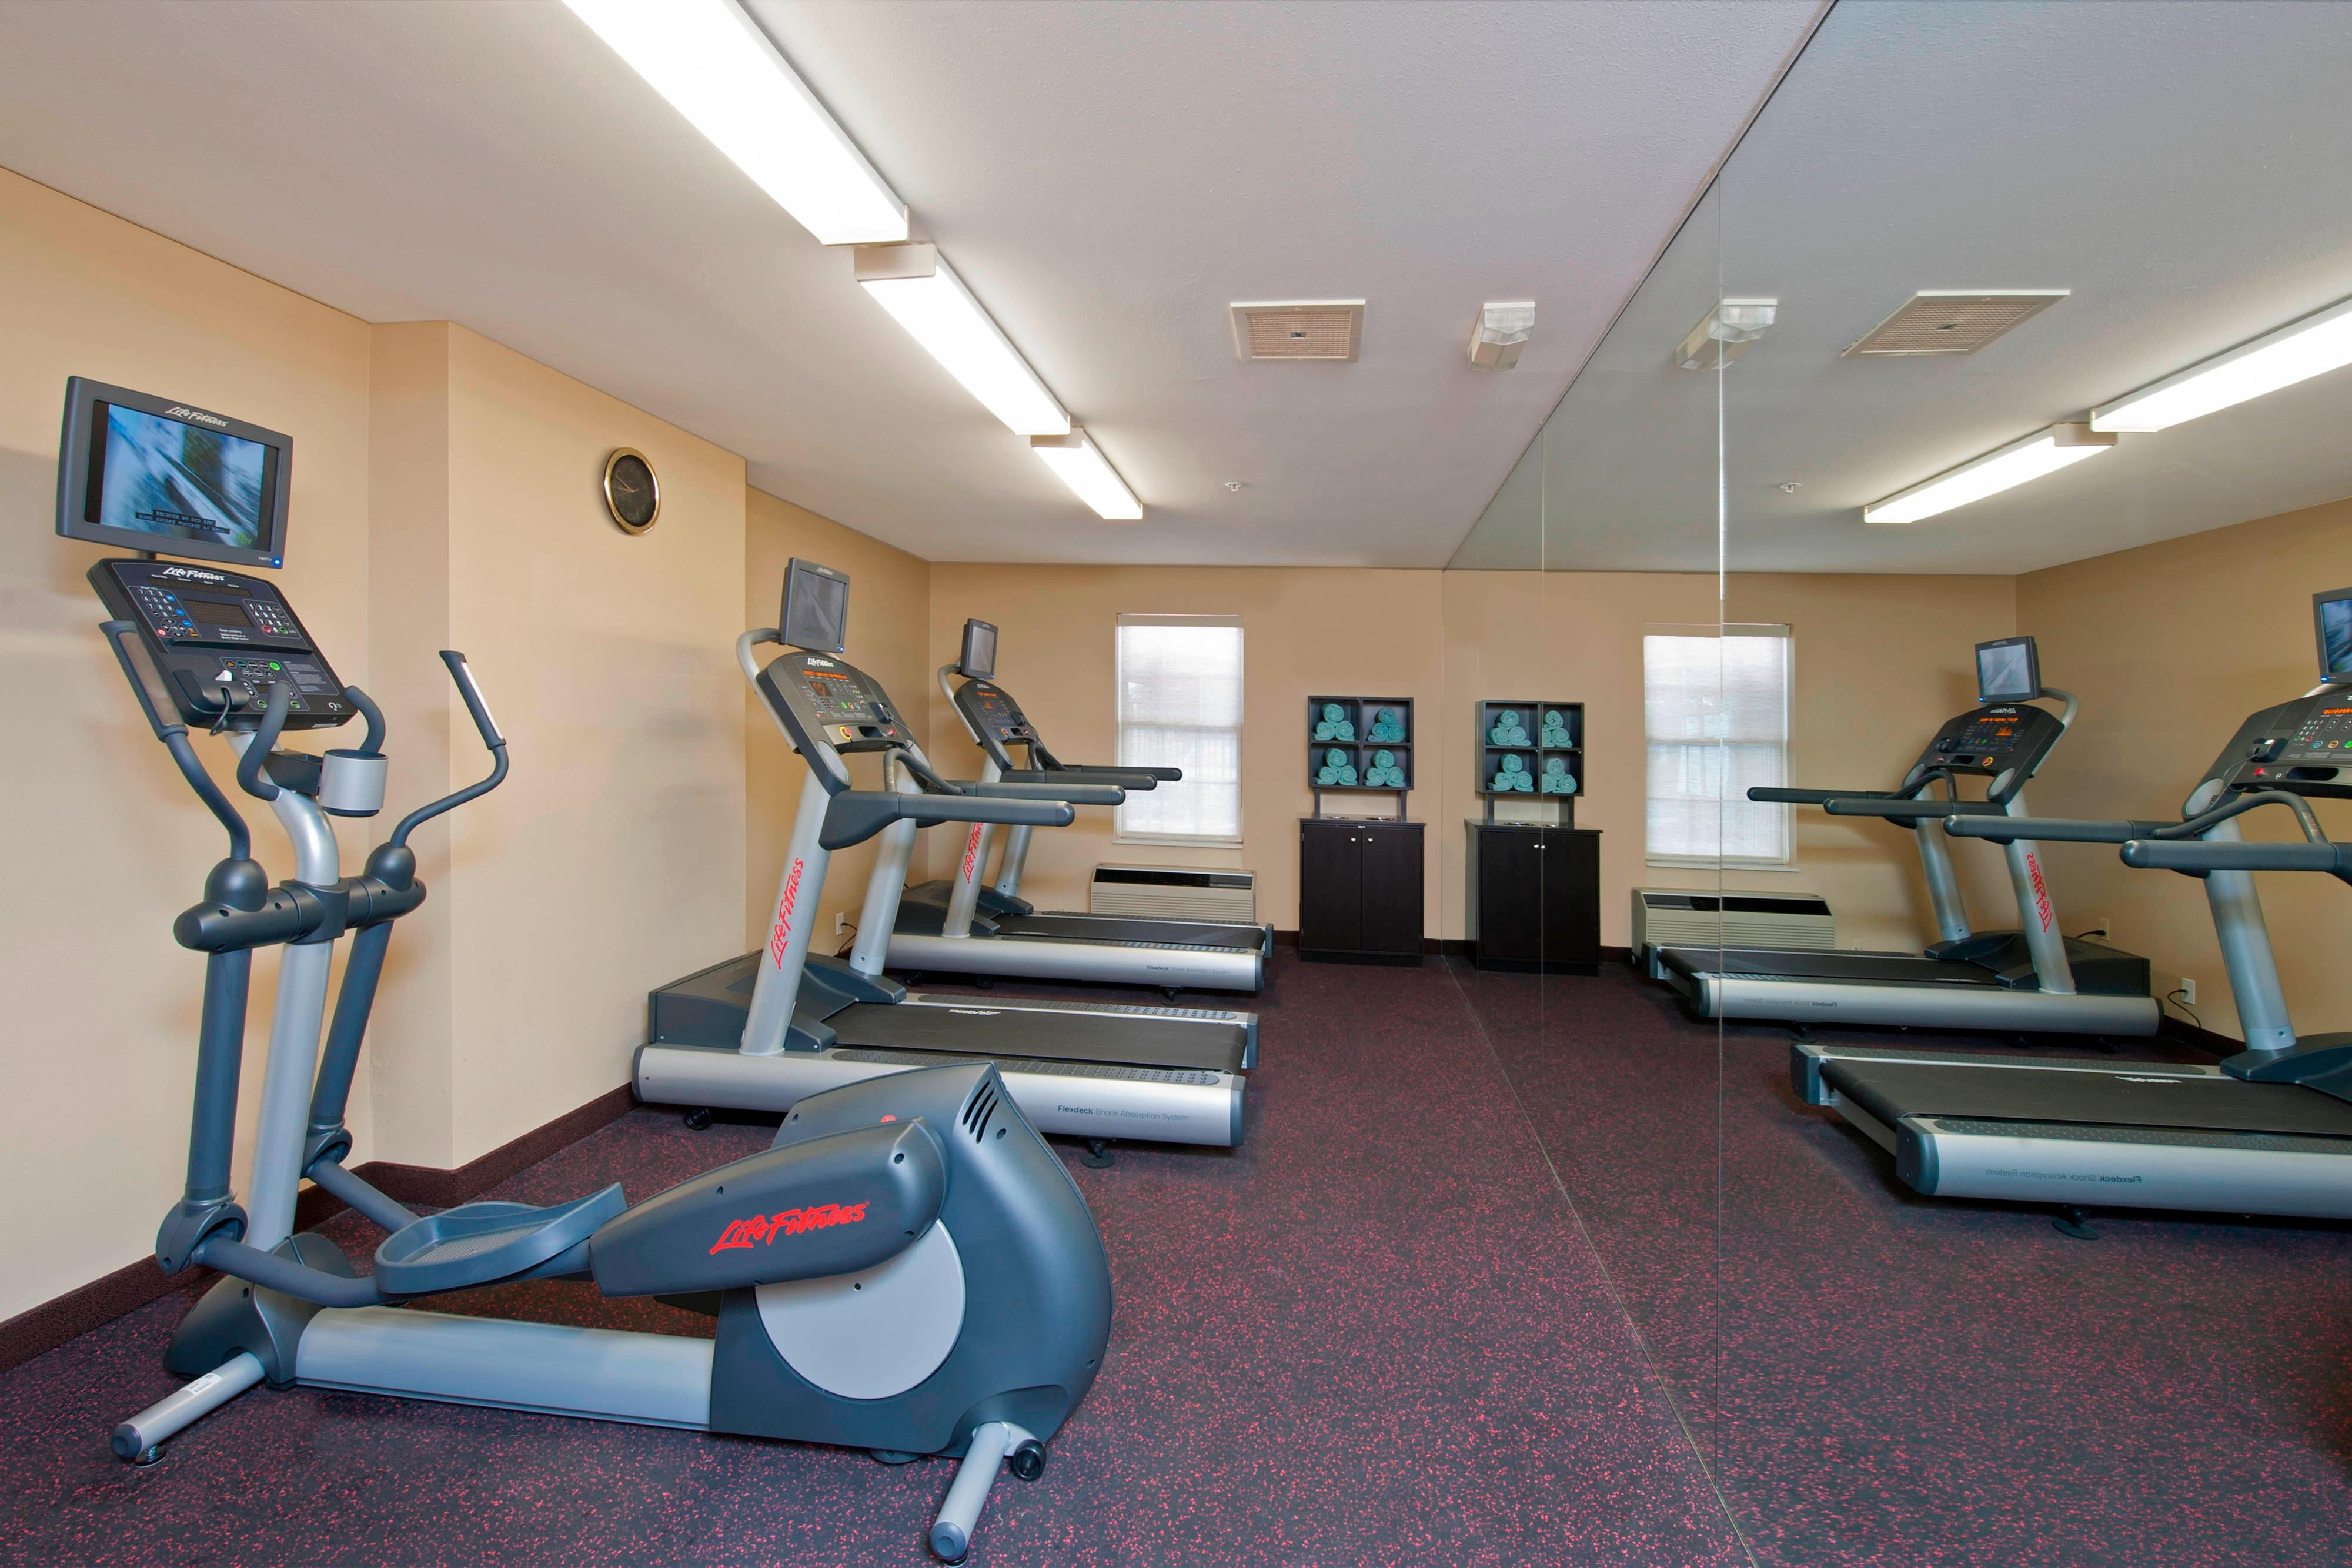 Fitness center TownePlace Suites Bloomington IN